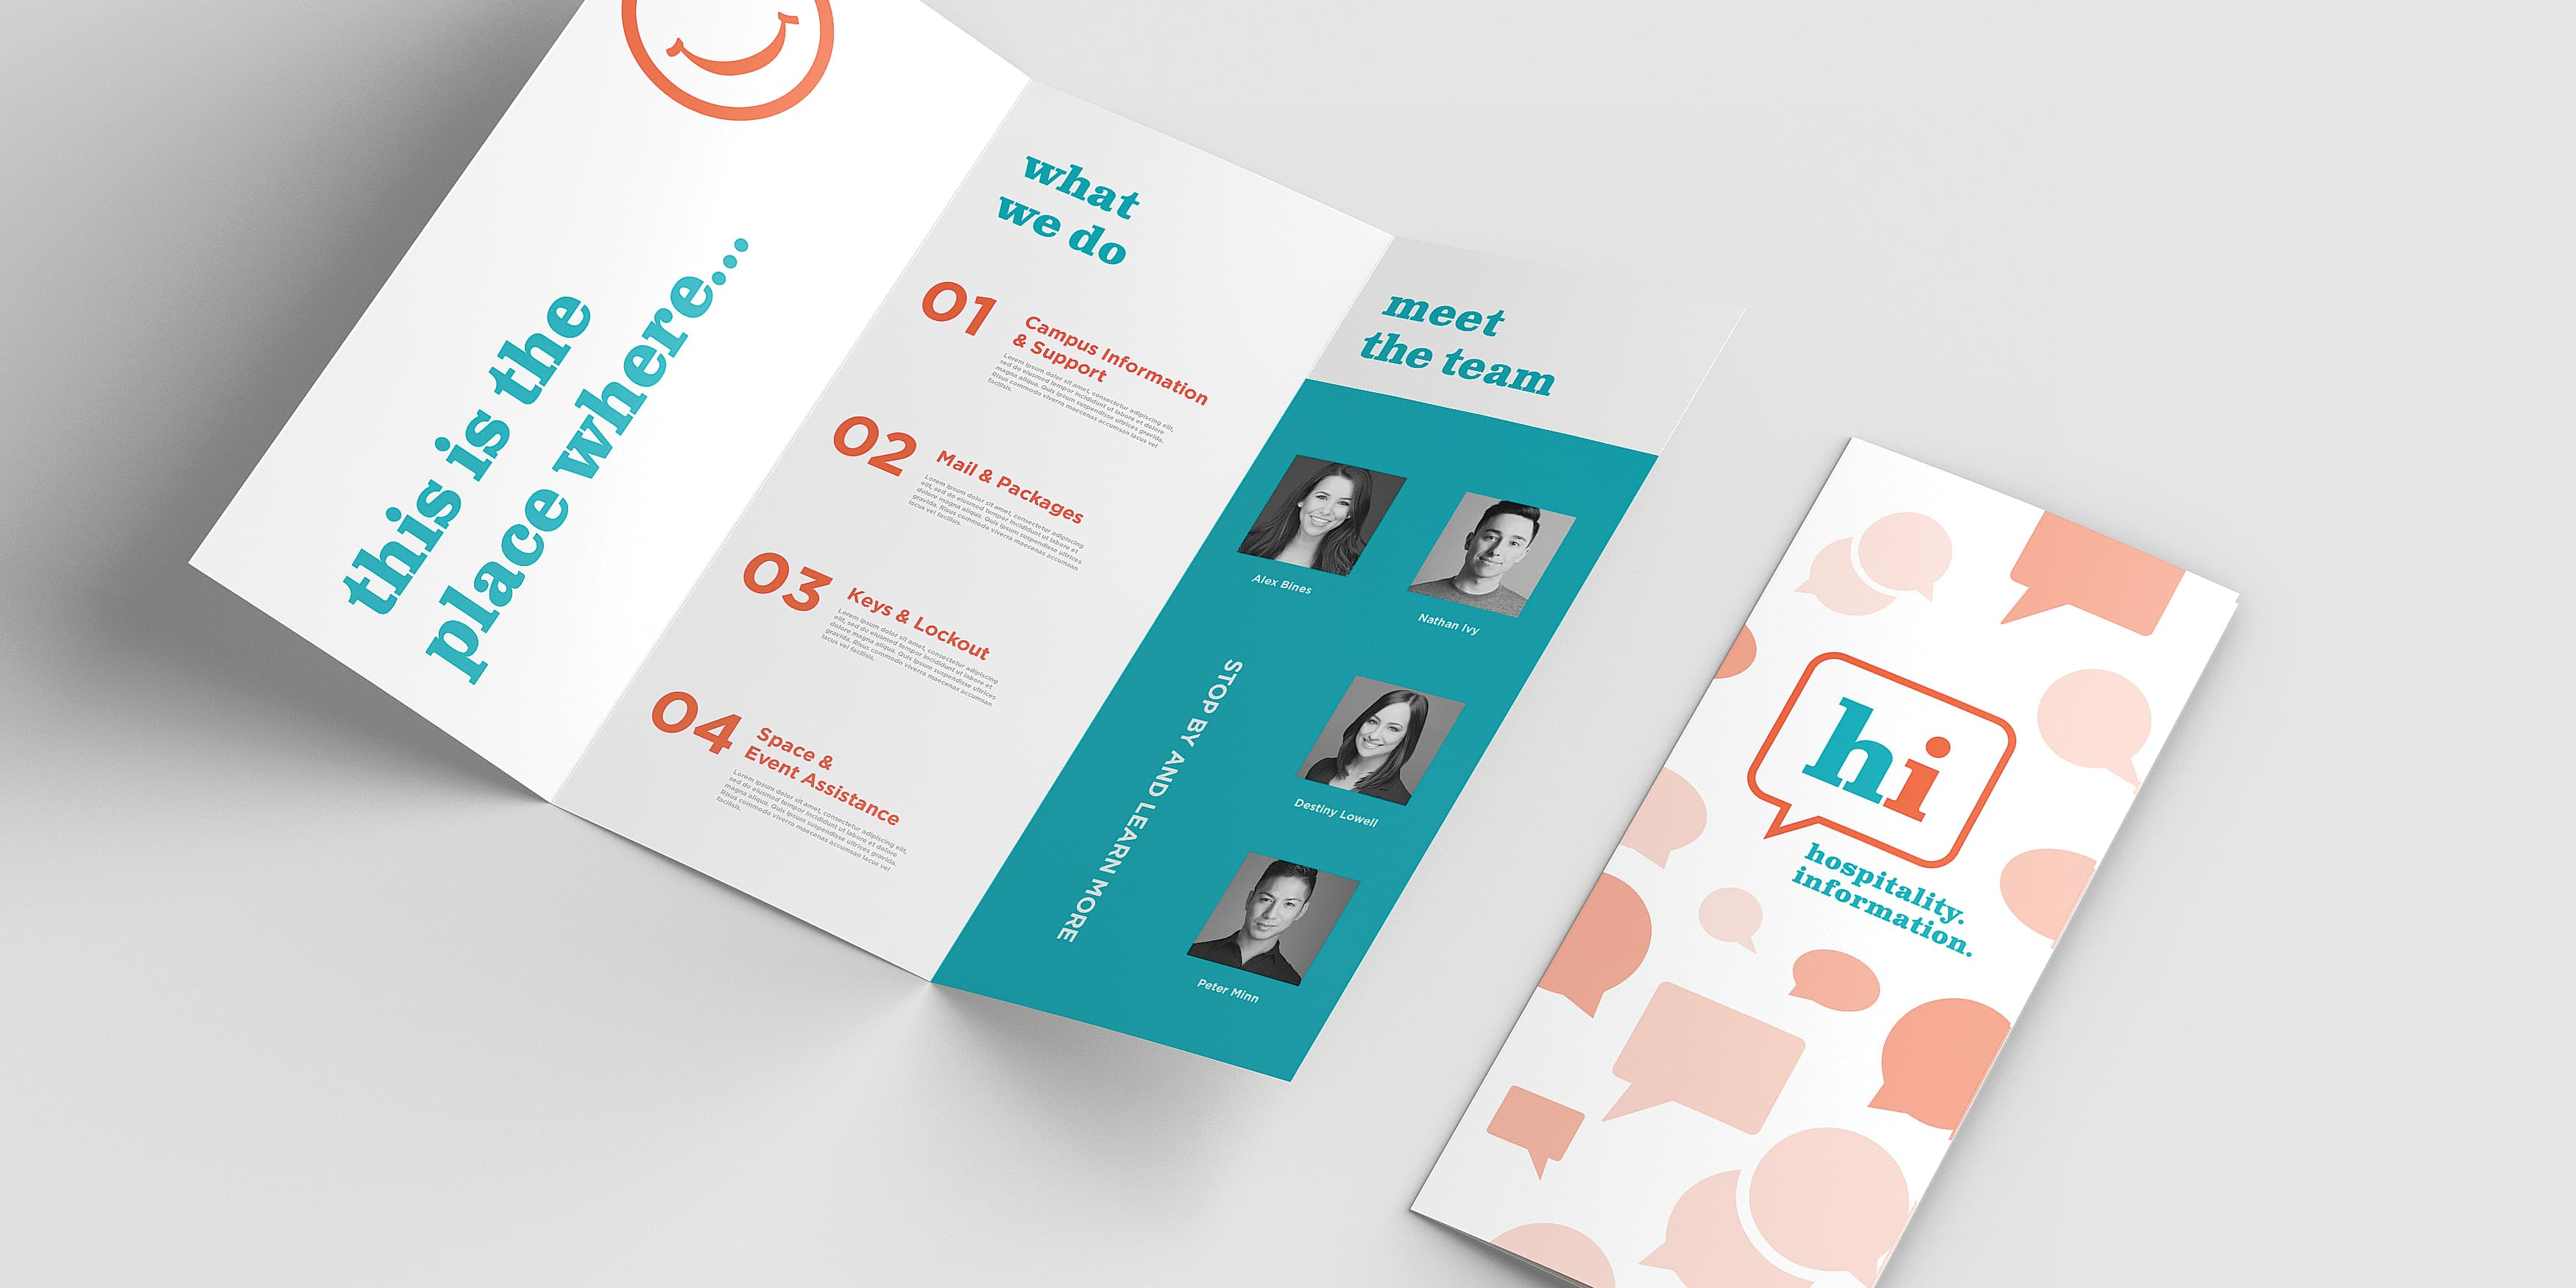 RSM Design collaborated with UC San Diego to establish the concierge service for students living on the university campus, through branding and logo design services. Print Design. Pamphlet Design. Information Design.